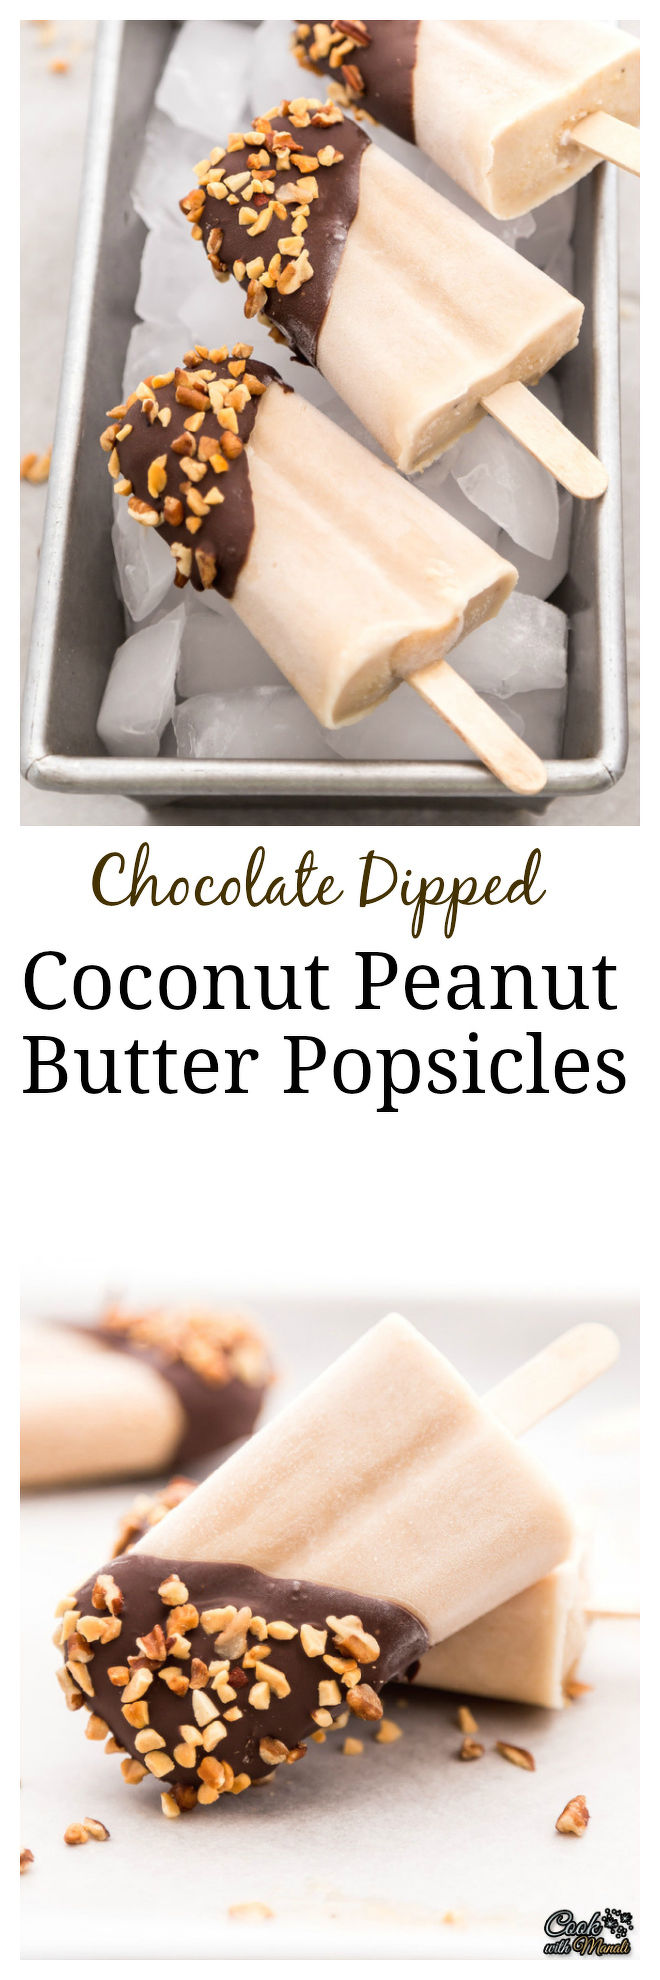 Coconut Peanut Butter Popsicles Collage-nocwm